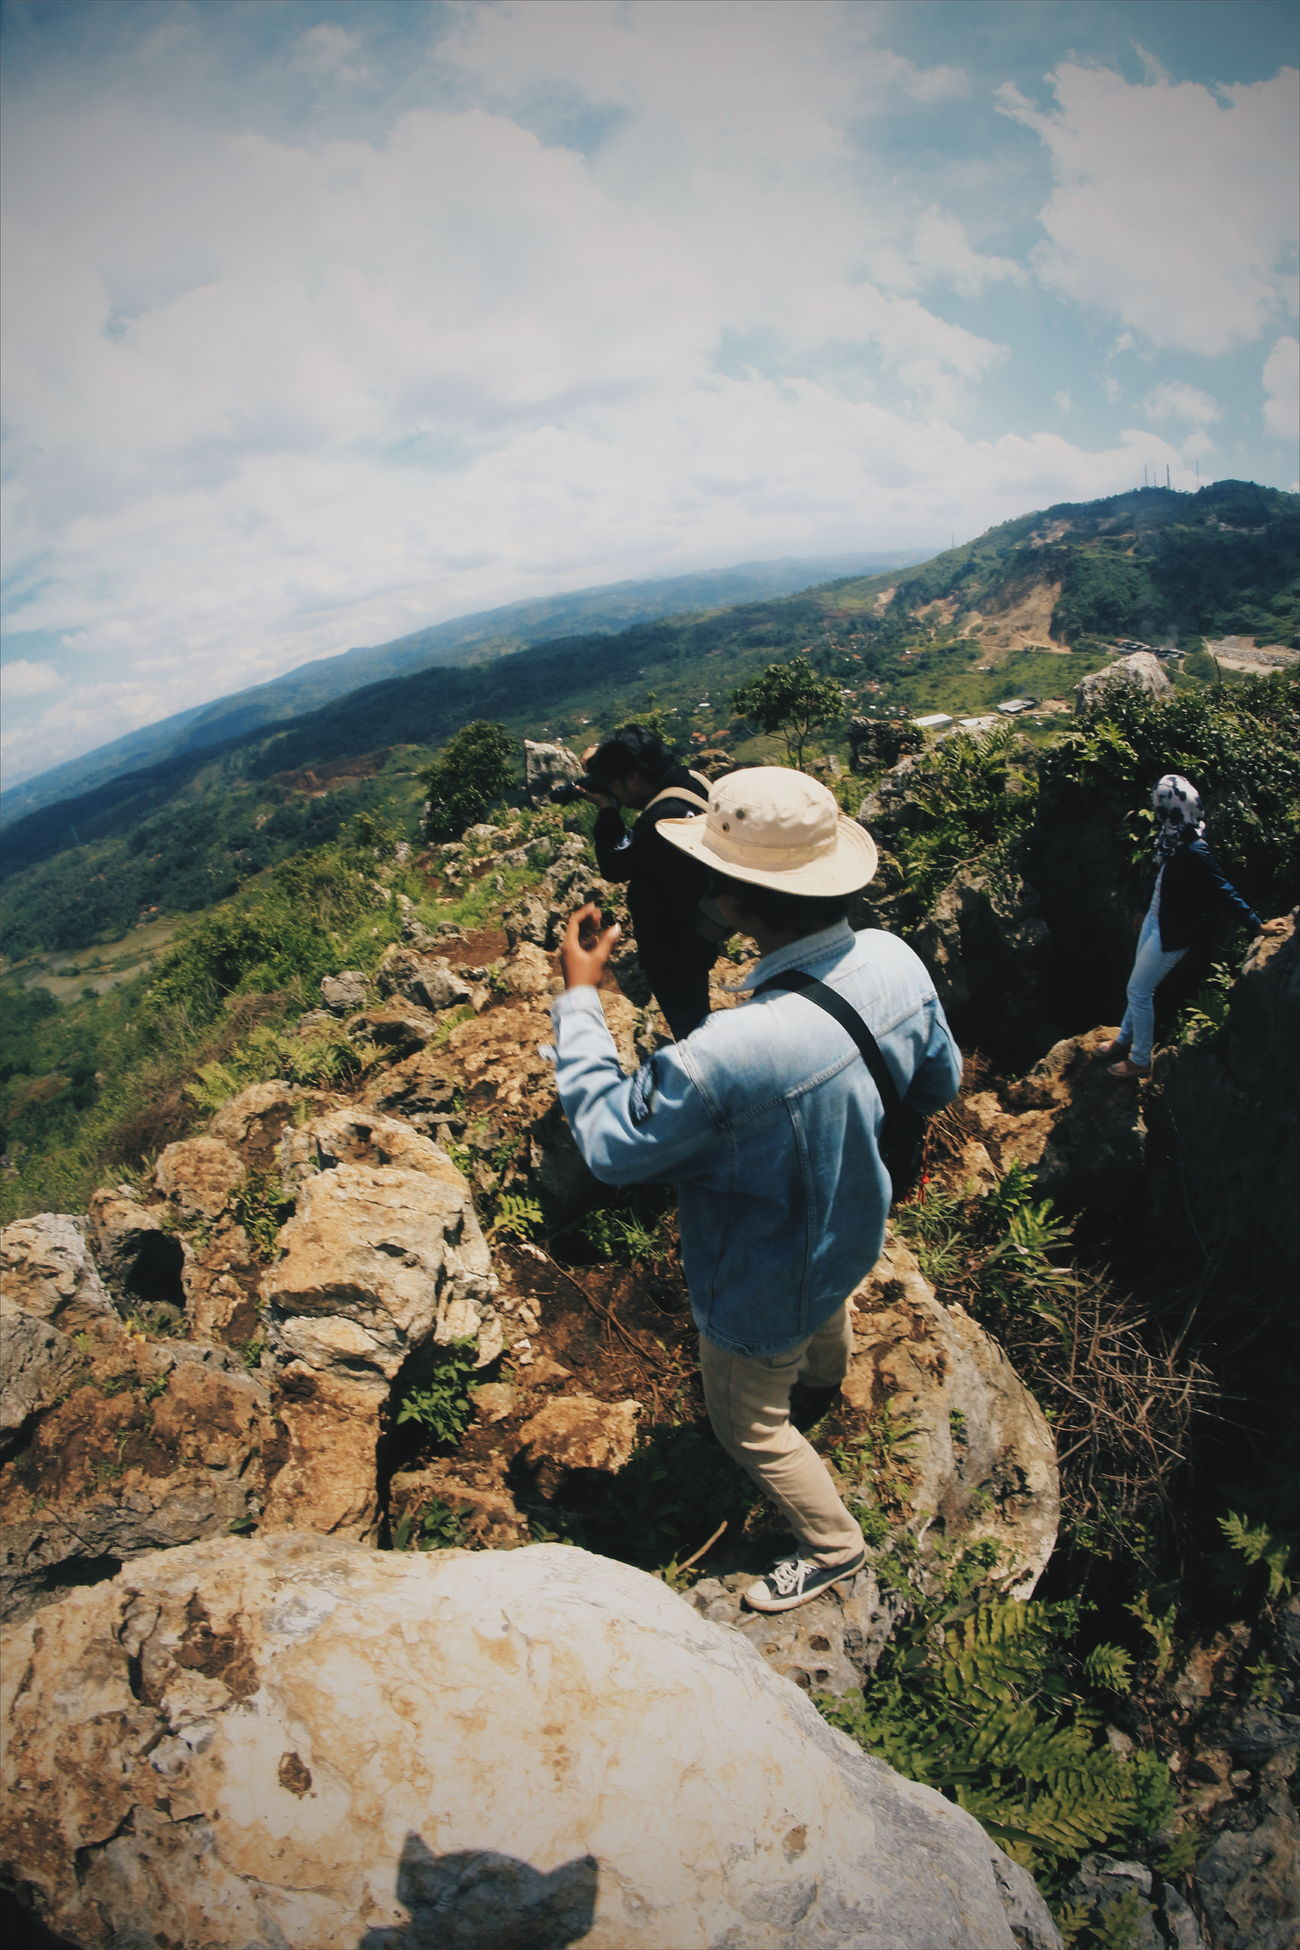 One Person Mid Adult Real People Adults Only One Man Only Adult People Only Men Day Beauty In Nature Outdoors Nature Focus On Foreground EyeEm Indonesia Indonesia_photography Camouflage Clothing Human Body Part